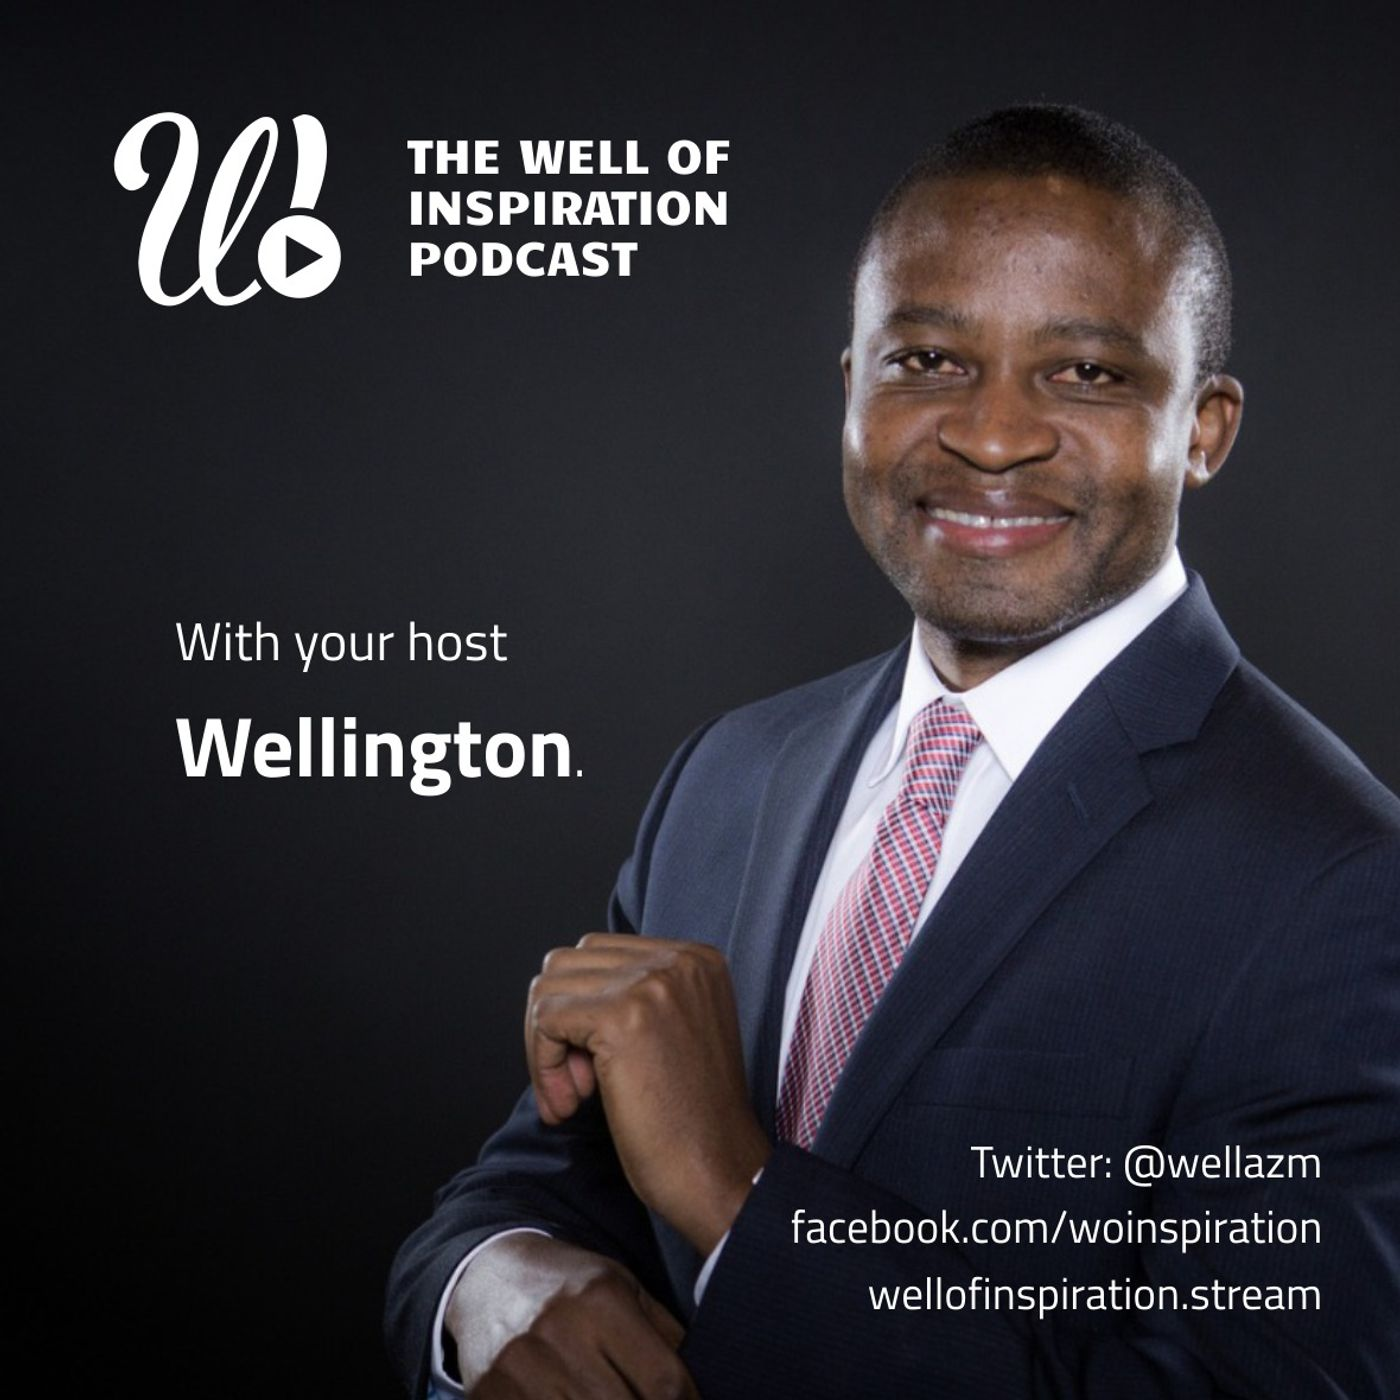 Well Of Inspiration Podcast